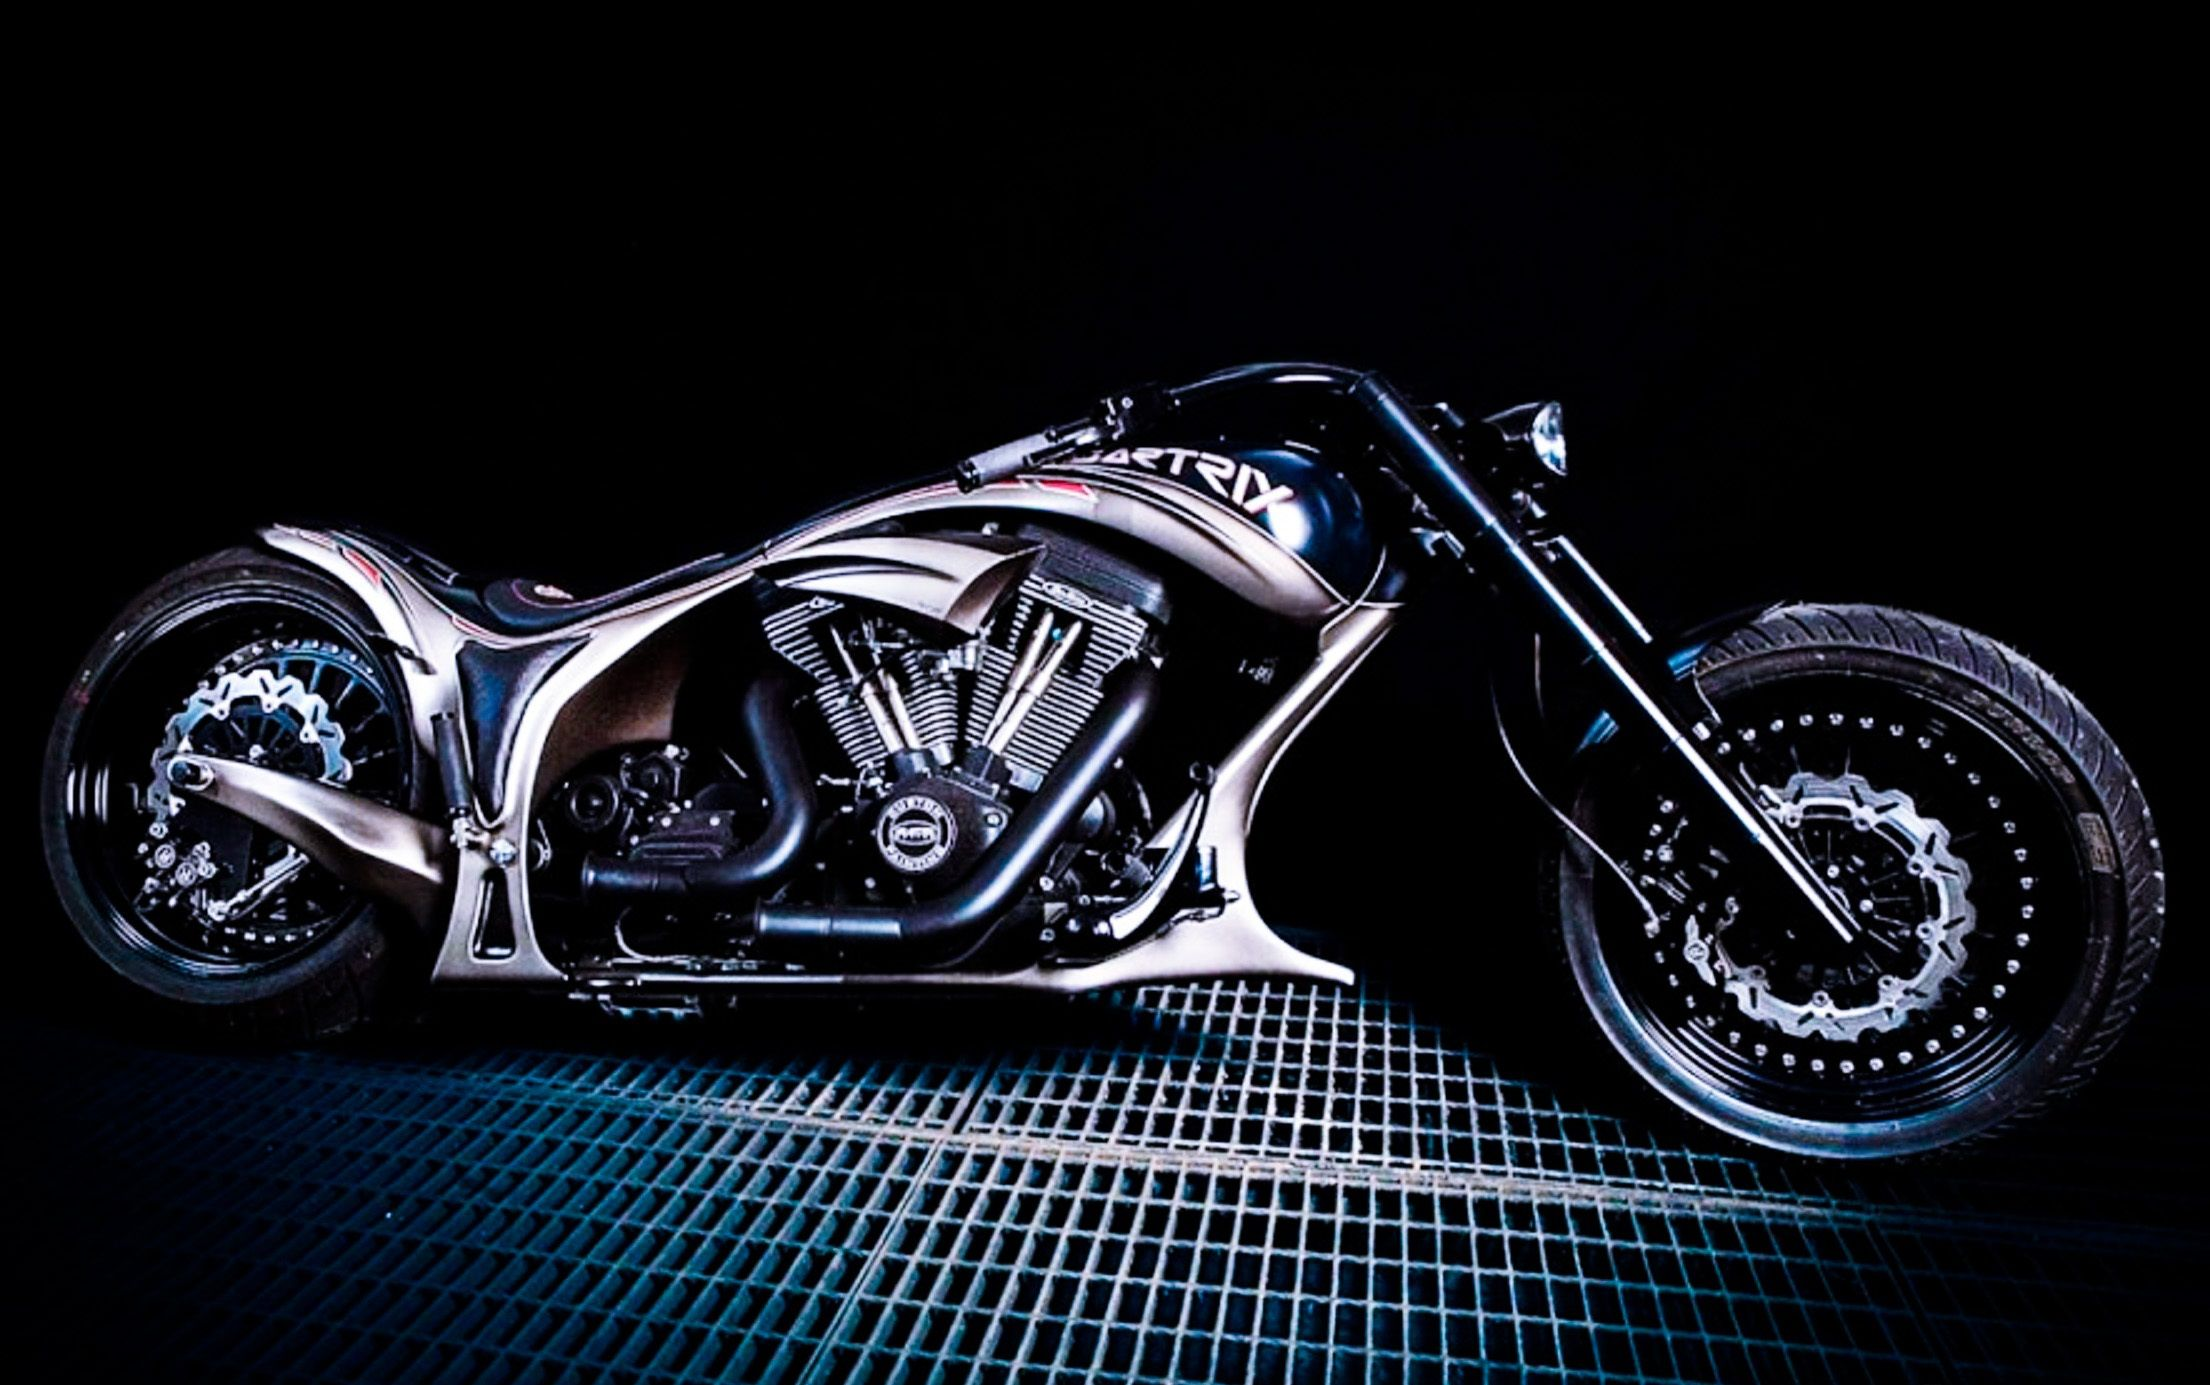 MS Artrix 'Rebirth' - http://msartrix.com/bike-gallery/special/rebirth